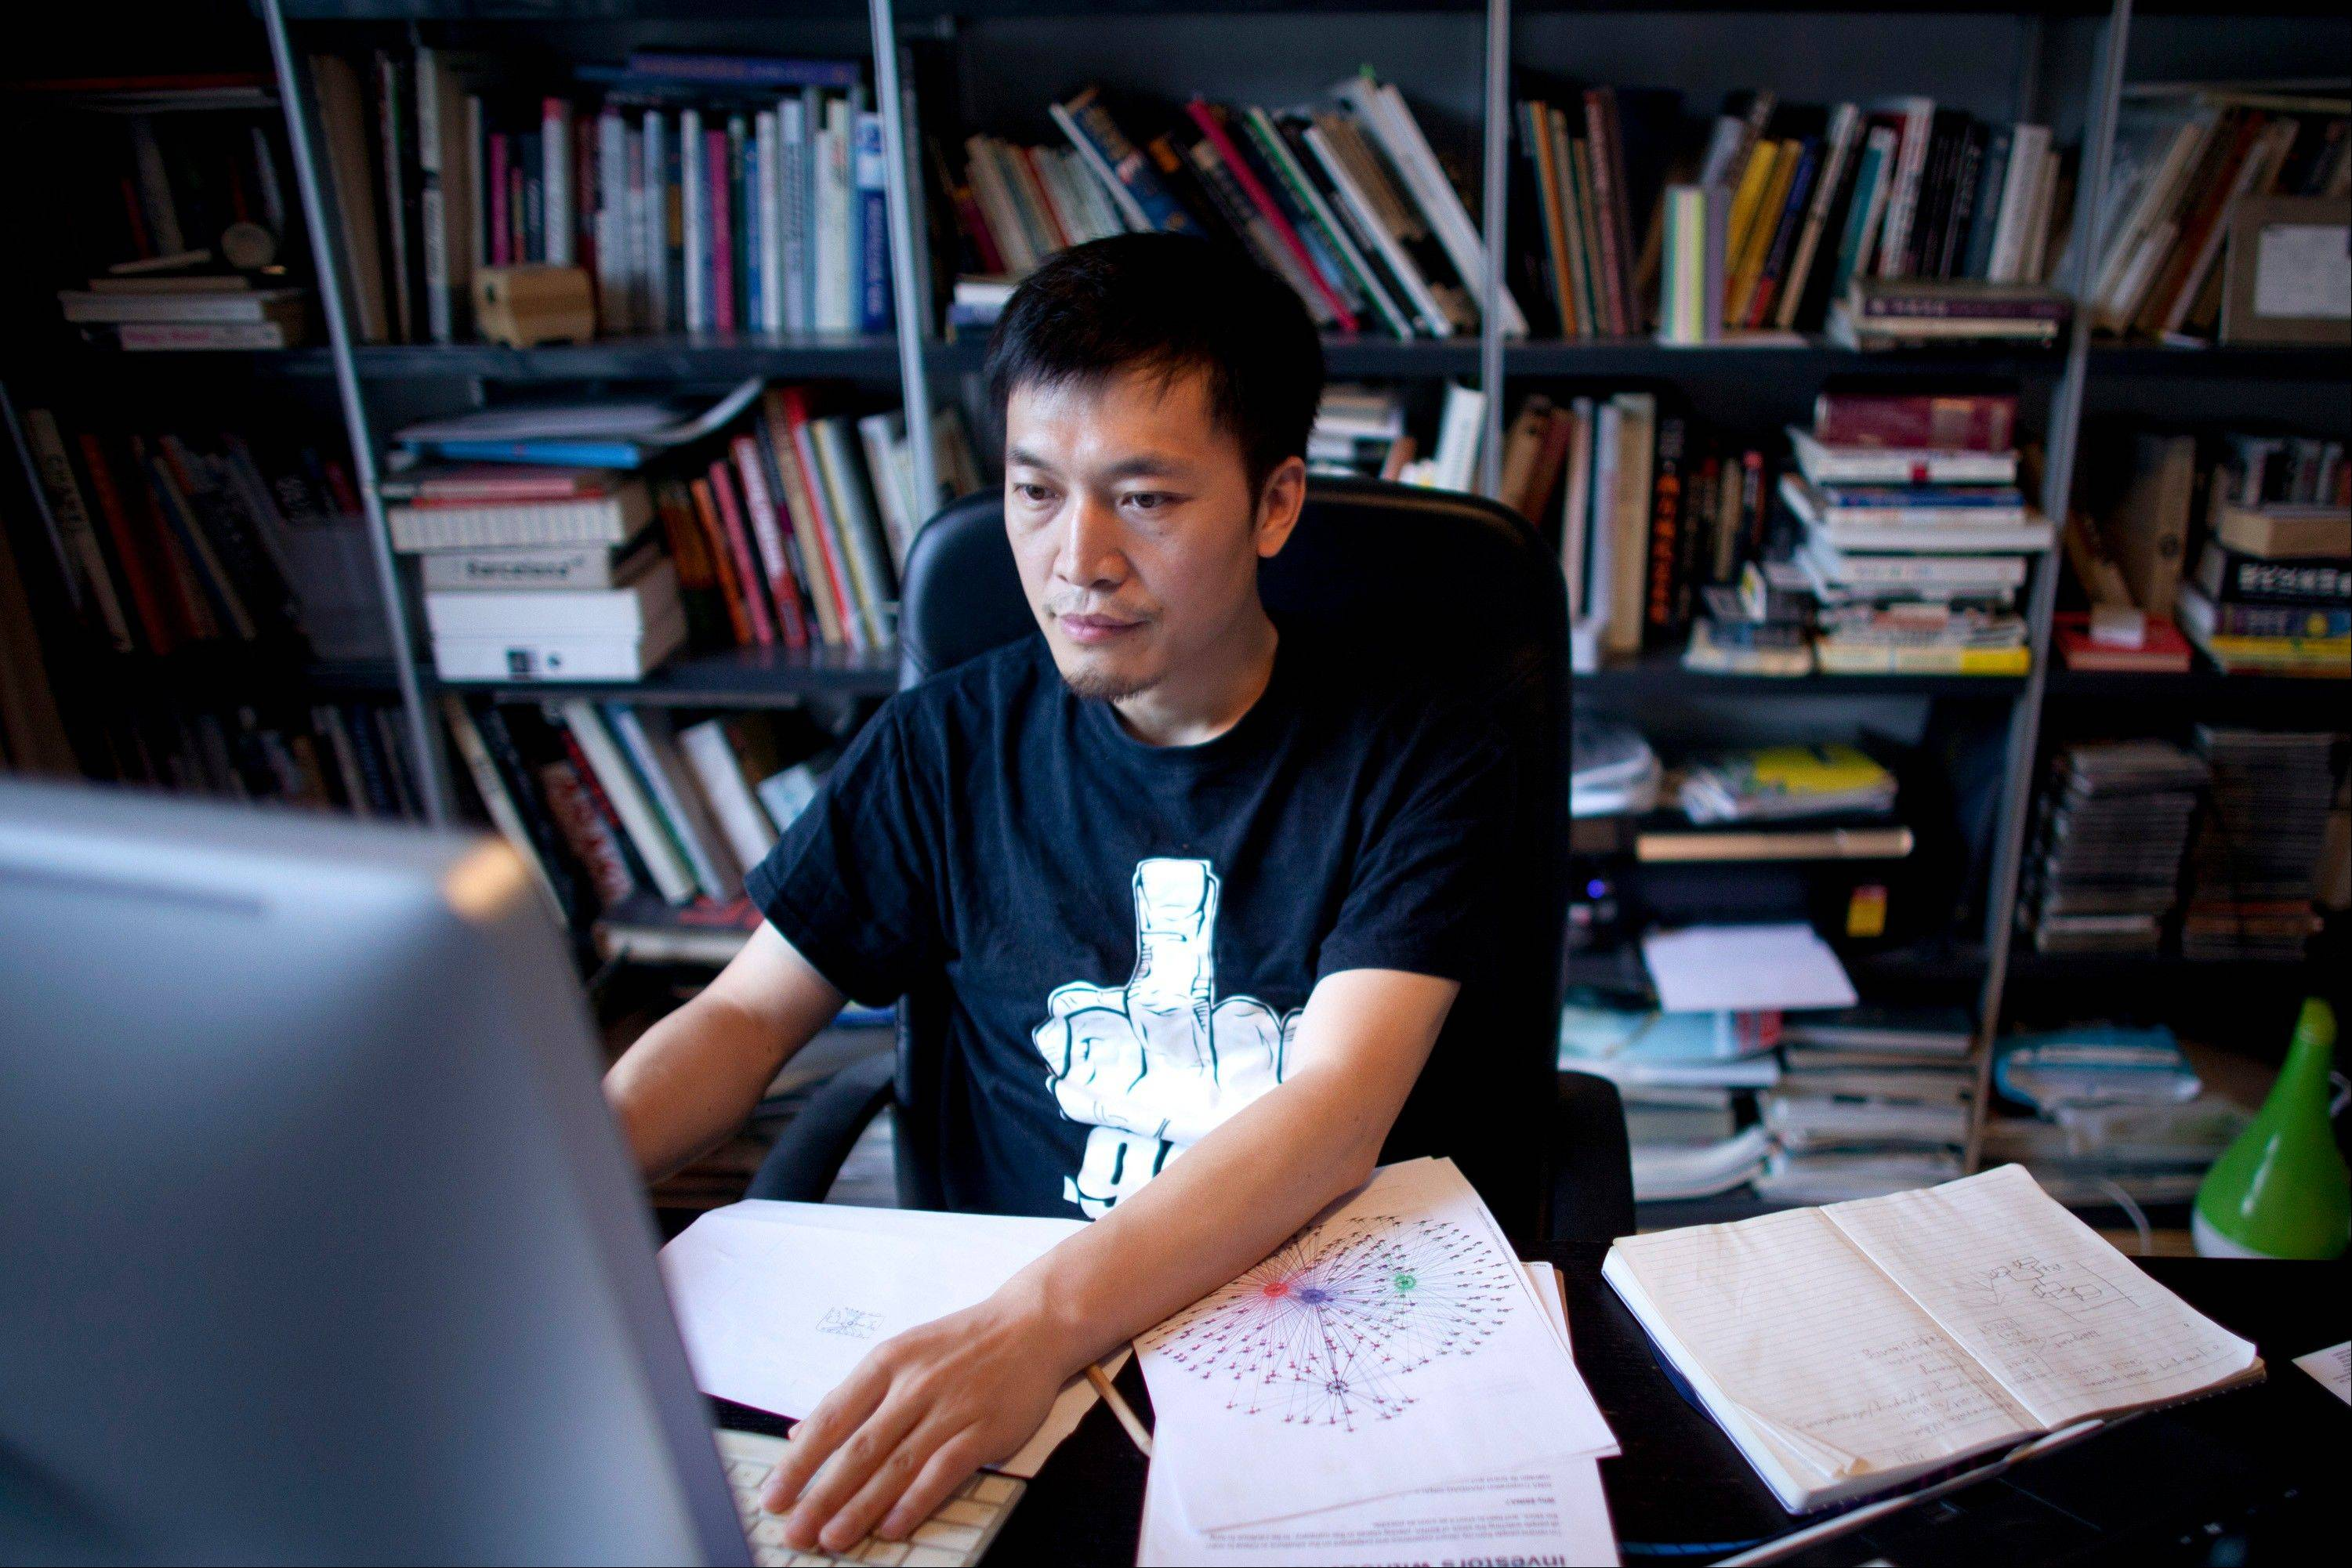 Isaac Mao, a well-known Chinese blogger and the founder of Sharism Lab, a social media research group, works on a computer in Beijing. Mao had more than 30,000 users when his Weibo account was deleted in June after he made a series of questioning remarks about China's space program.